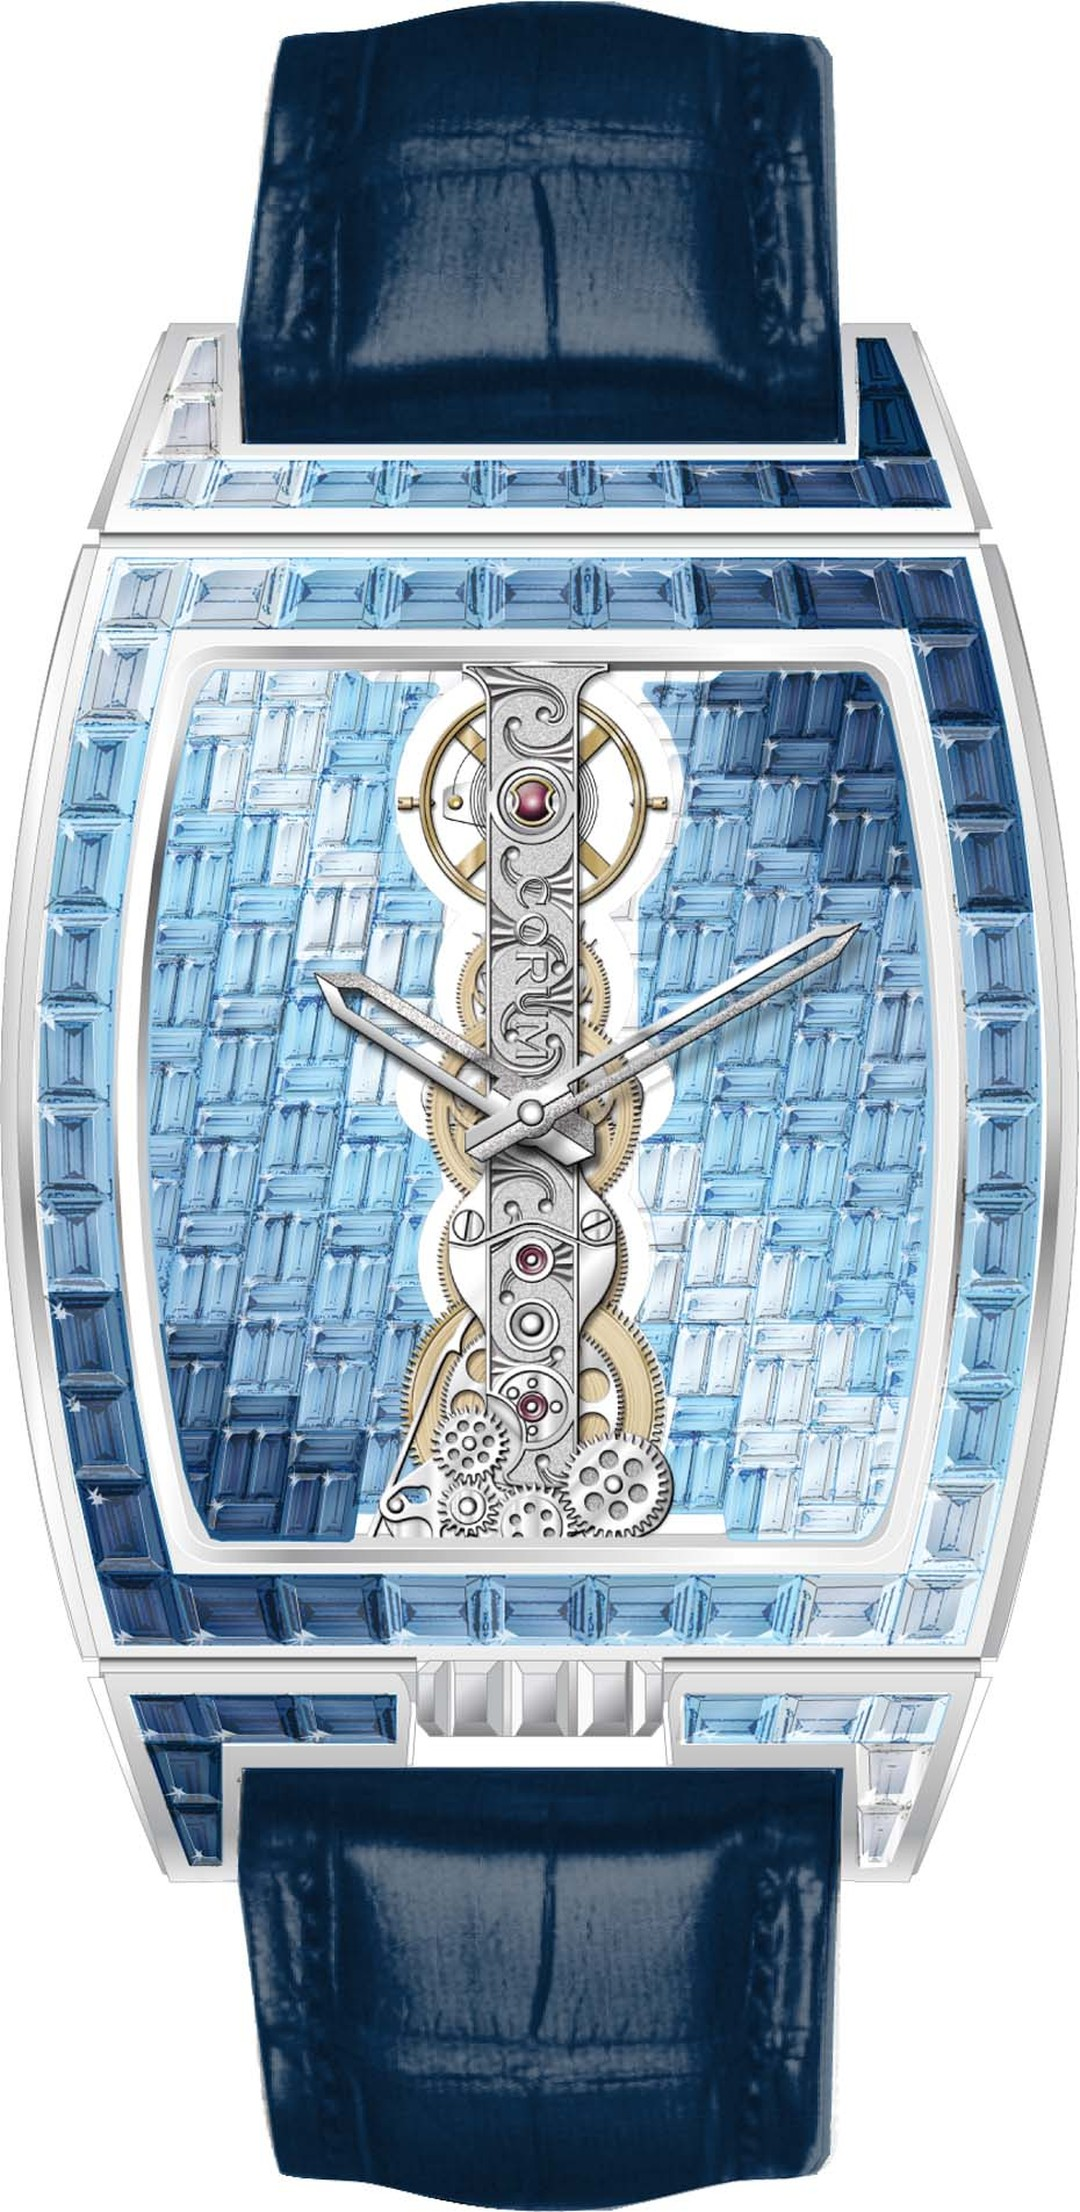 A spectacular interpretation of Corum's Golden Bridge, with the watch mechanism reduced to a thin strip, further enhanced by a cross-hatch pattern of sapphires